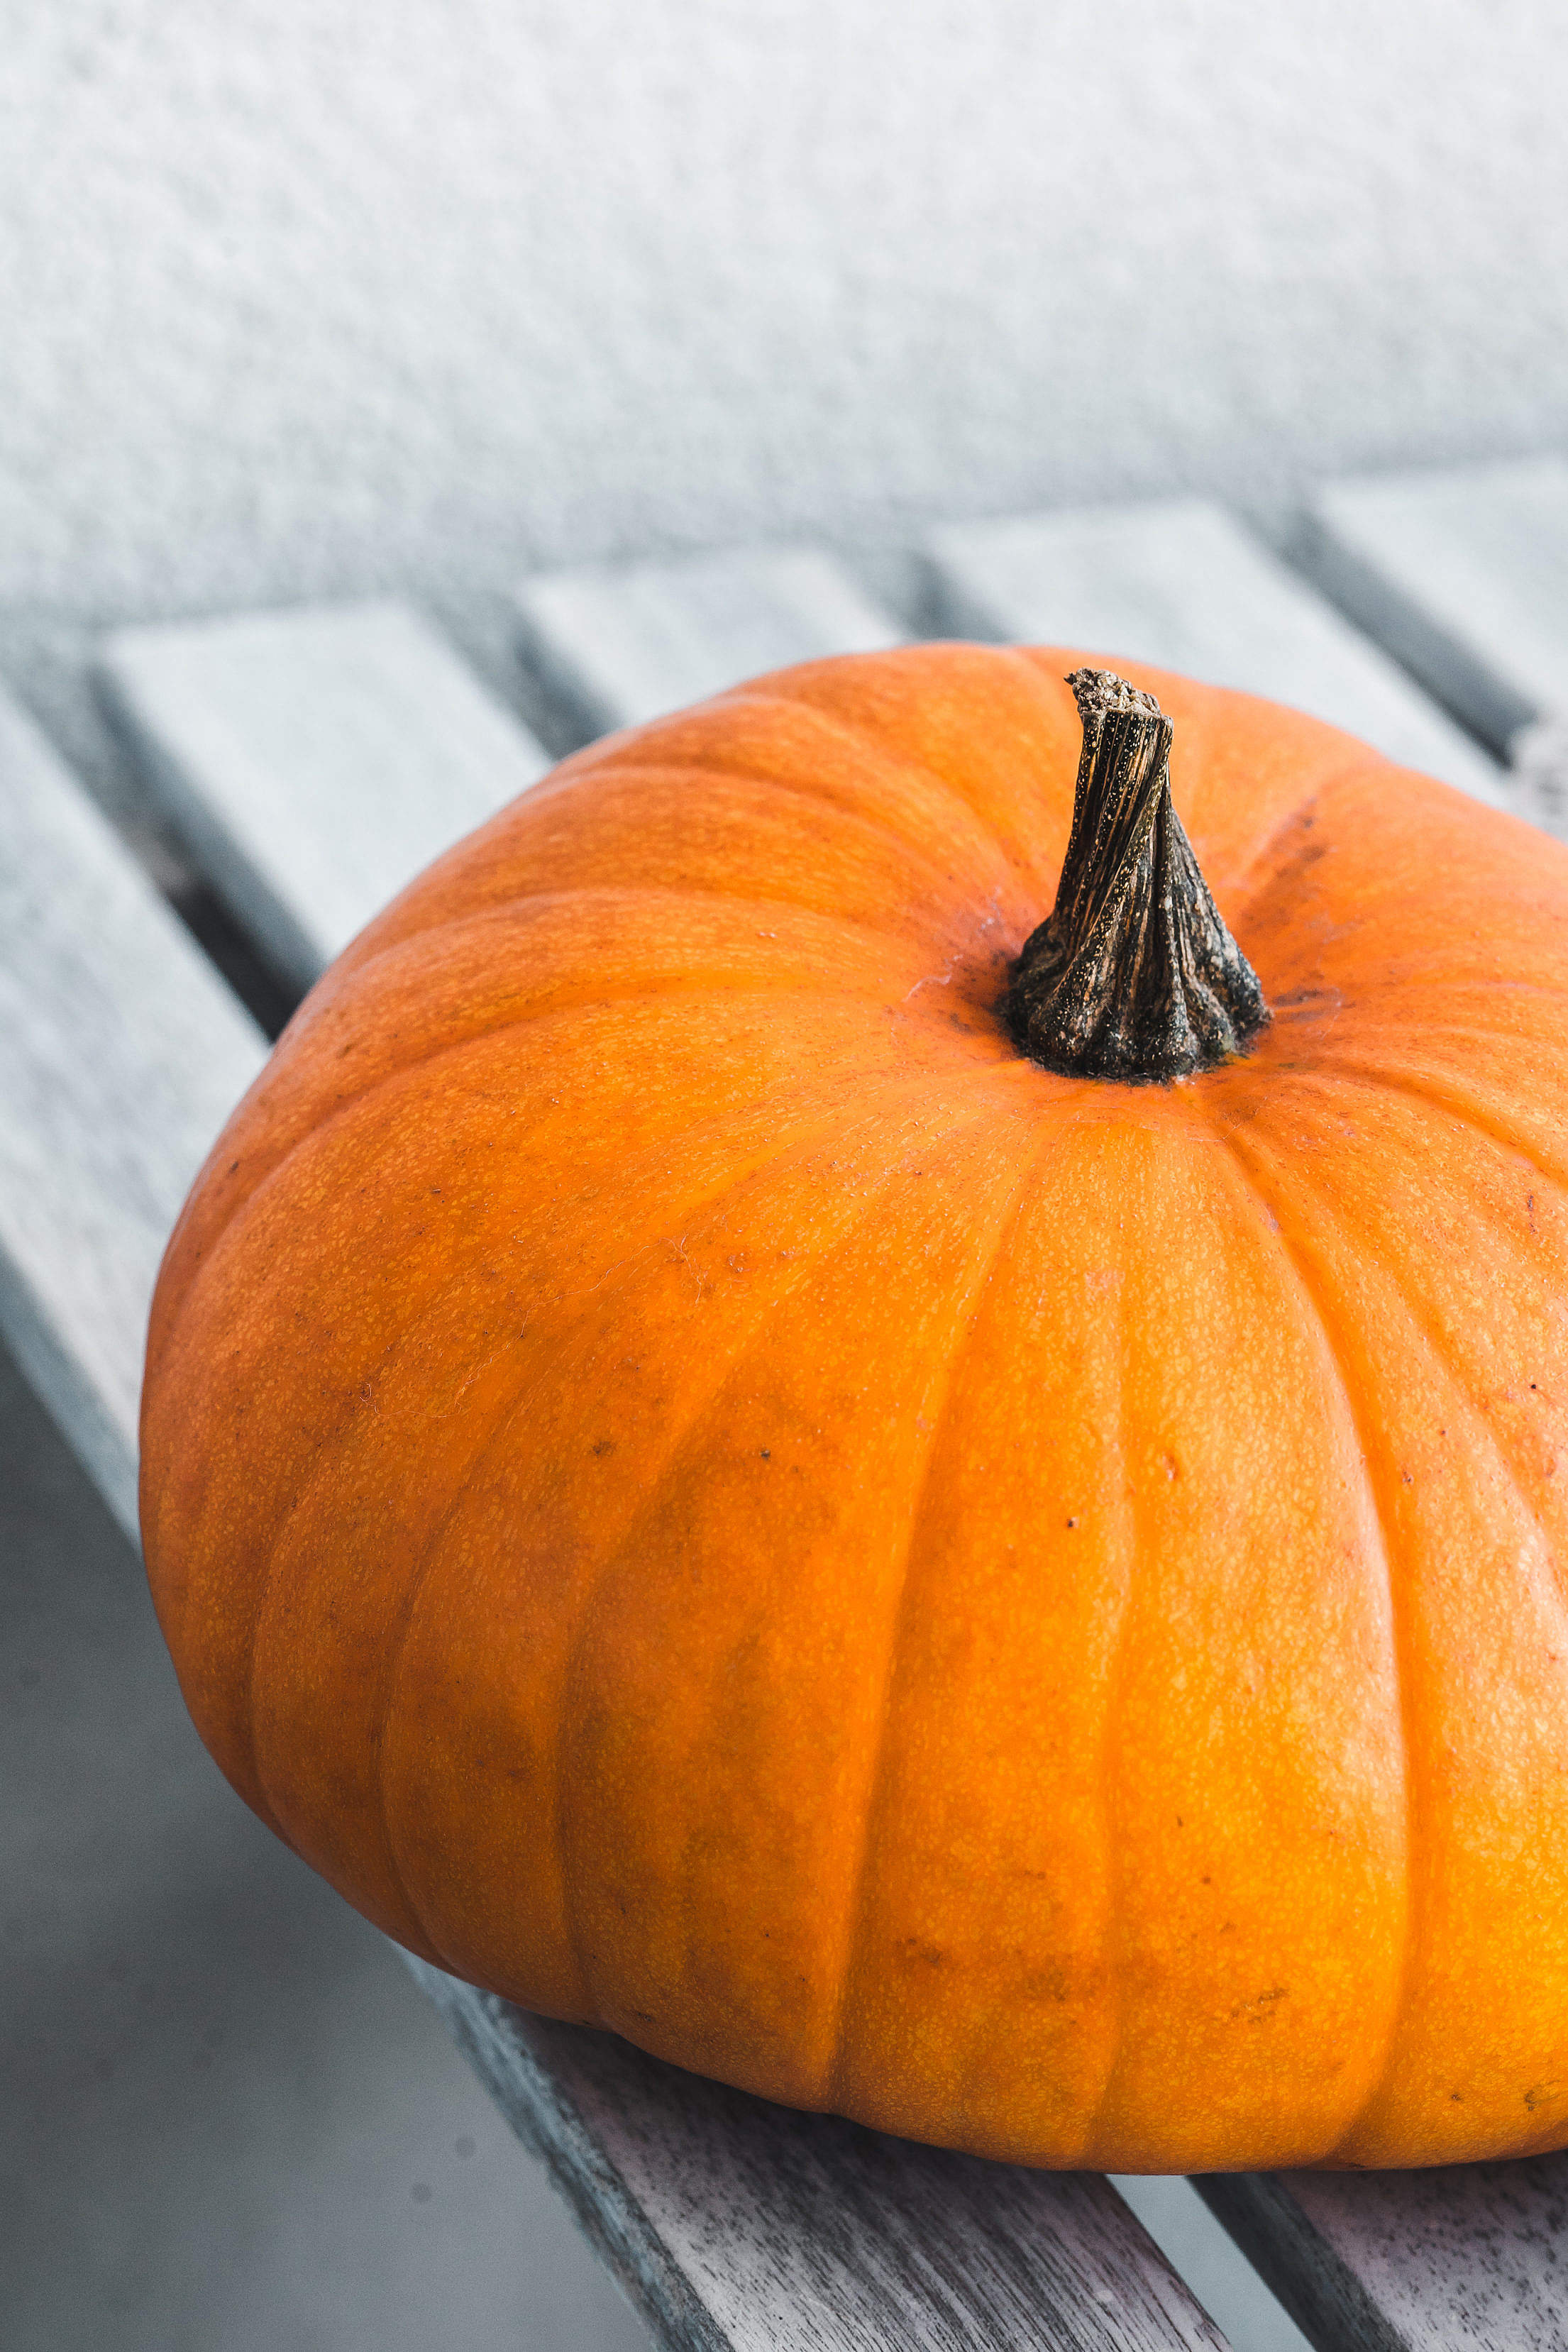 Pumpkin Free Stock Photo